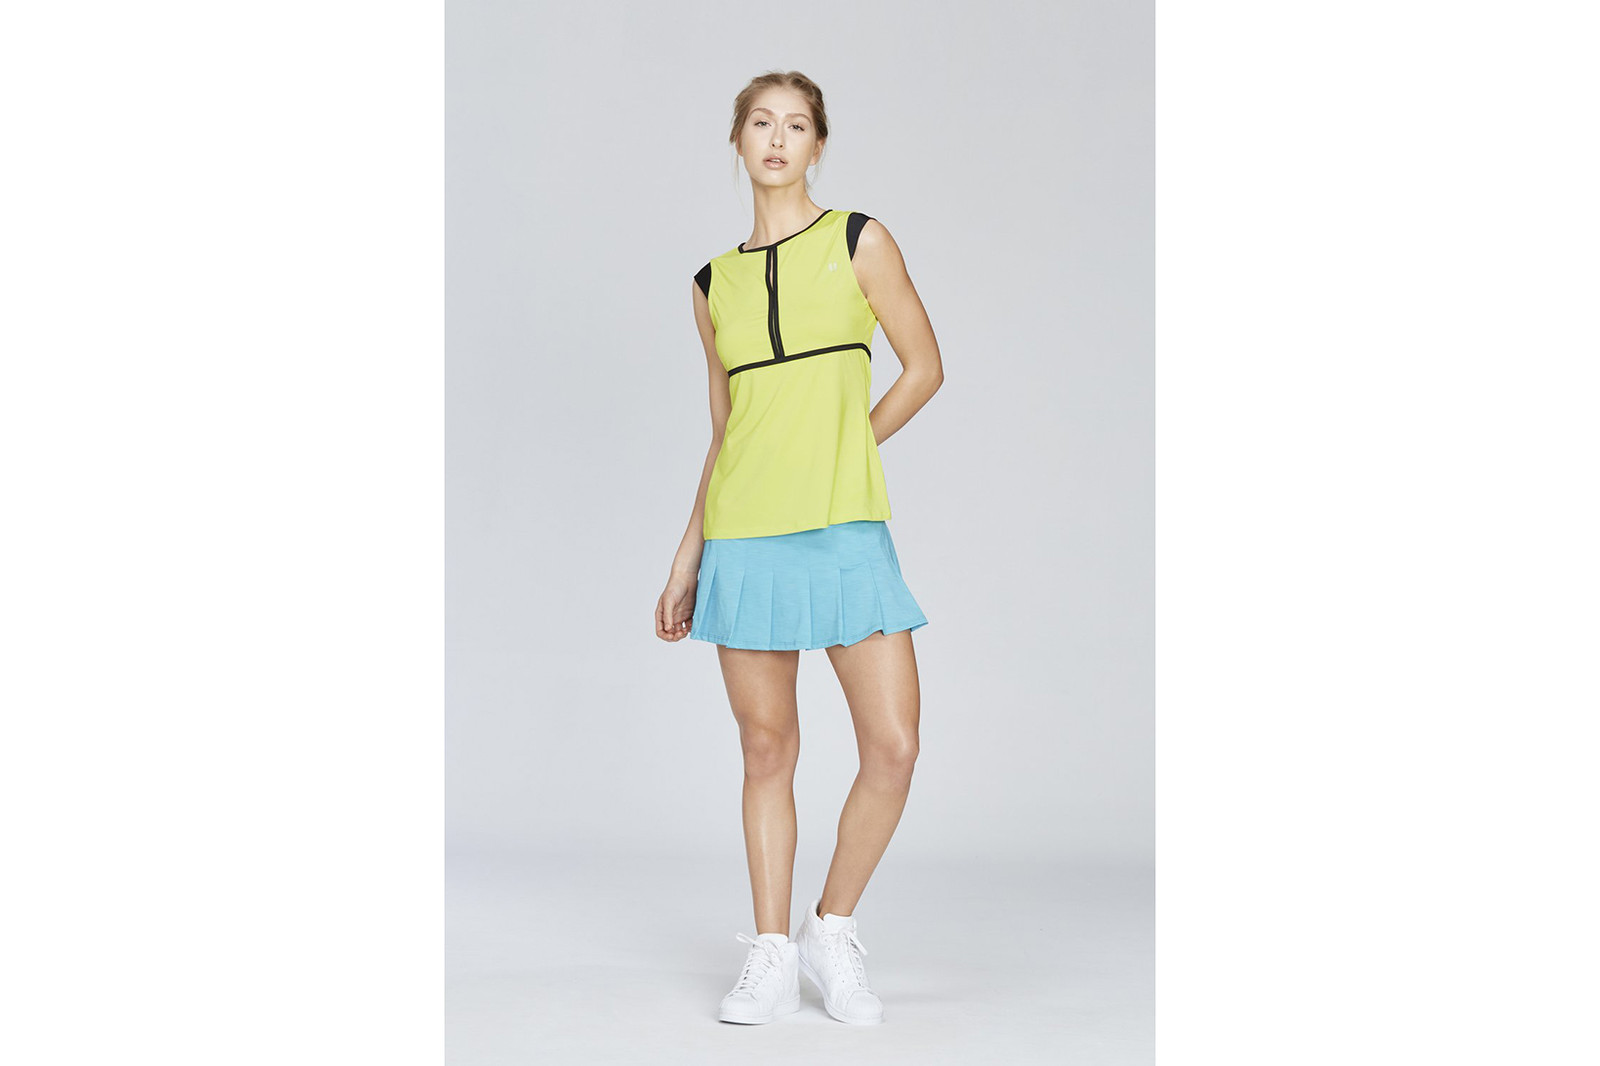 Venus Williams EleVen Activewear Selfridges Wimbledon Interview